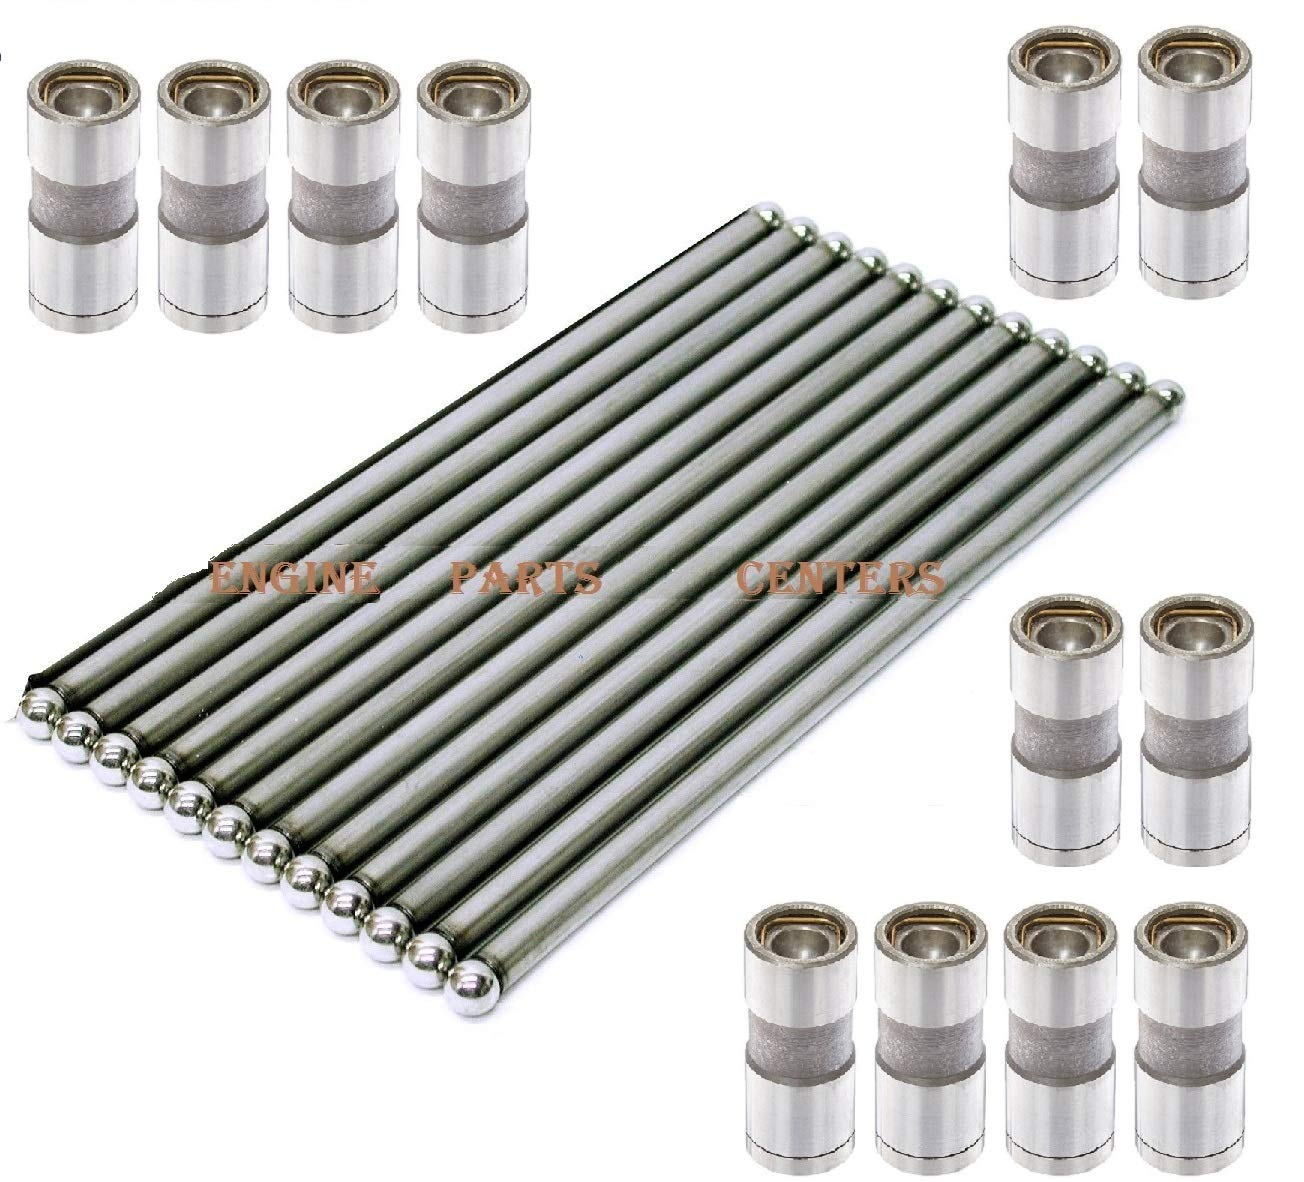 Jeep 4.0 242ci Hydraulic Lifters & Push Rods Complete Set of 12 1987-2006 (Lifters & Pushrods) ELgin Industries